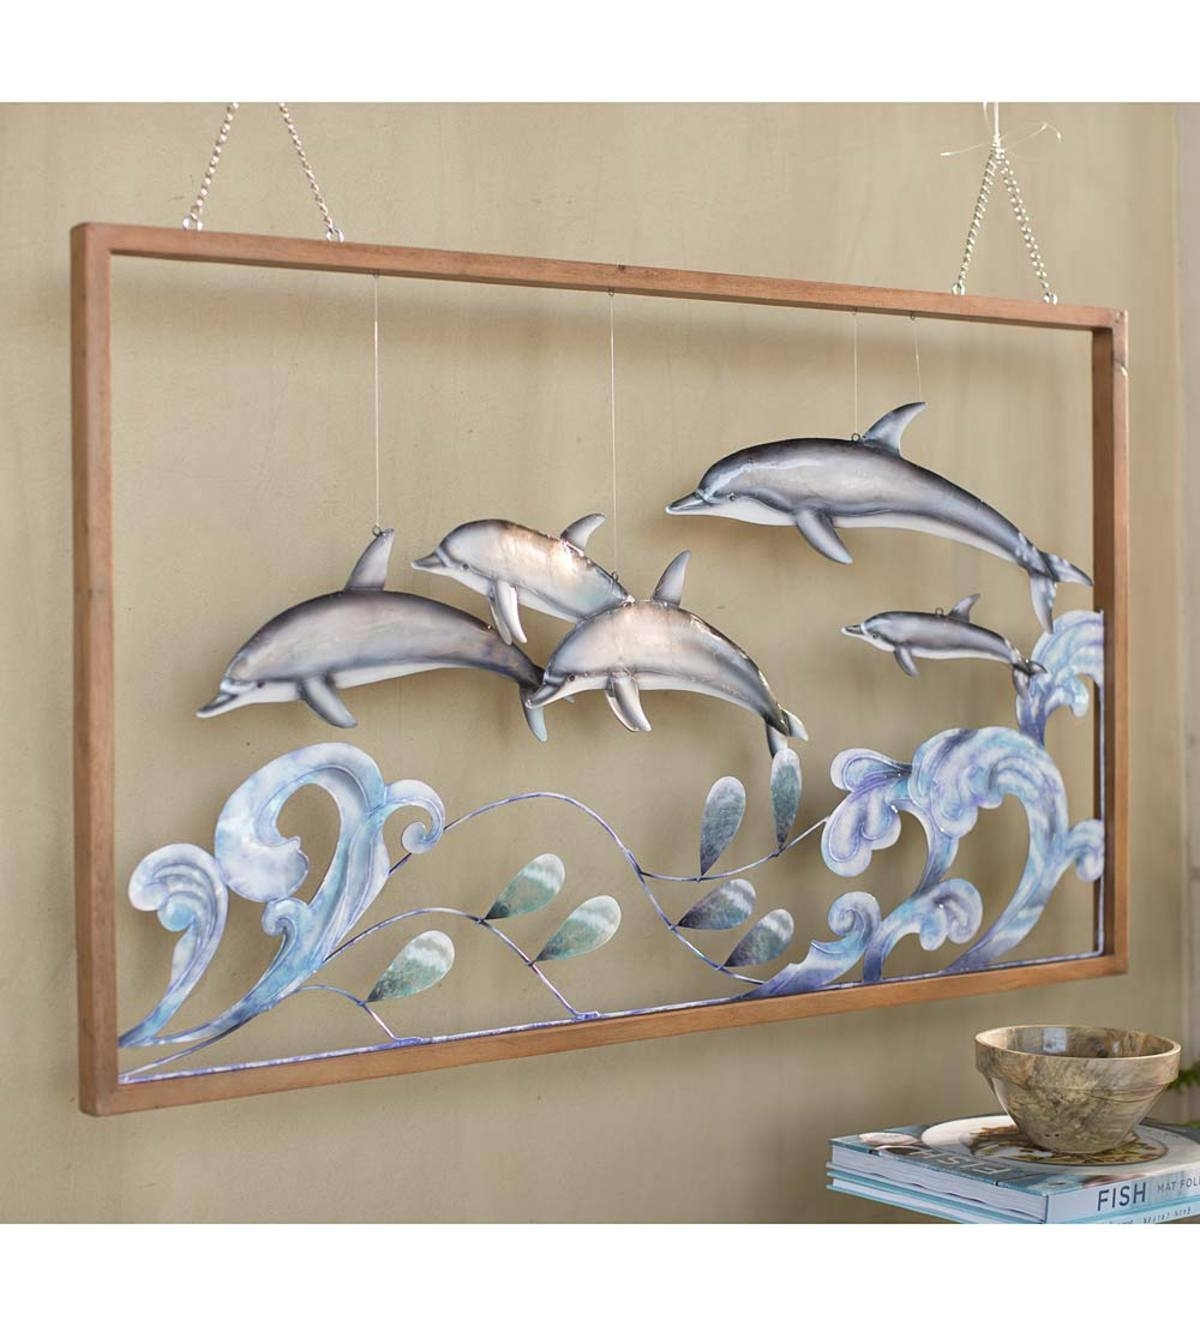 3 D Metal Dolphin Wall Art | Top Rated For The Home | New & Best Within Newest 3 Dimensional Wall Art (Gallery 5 of 20)